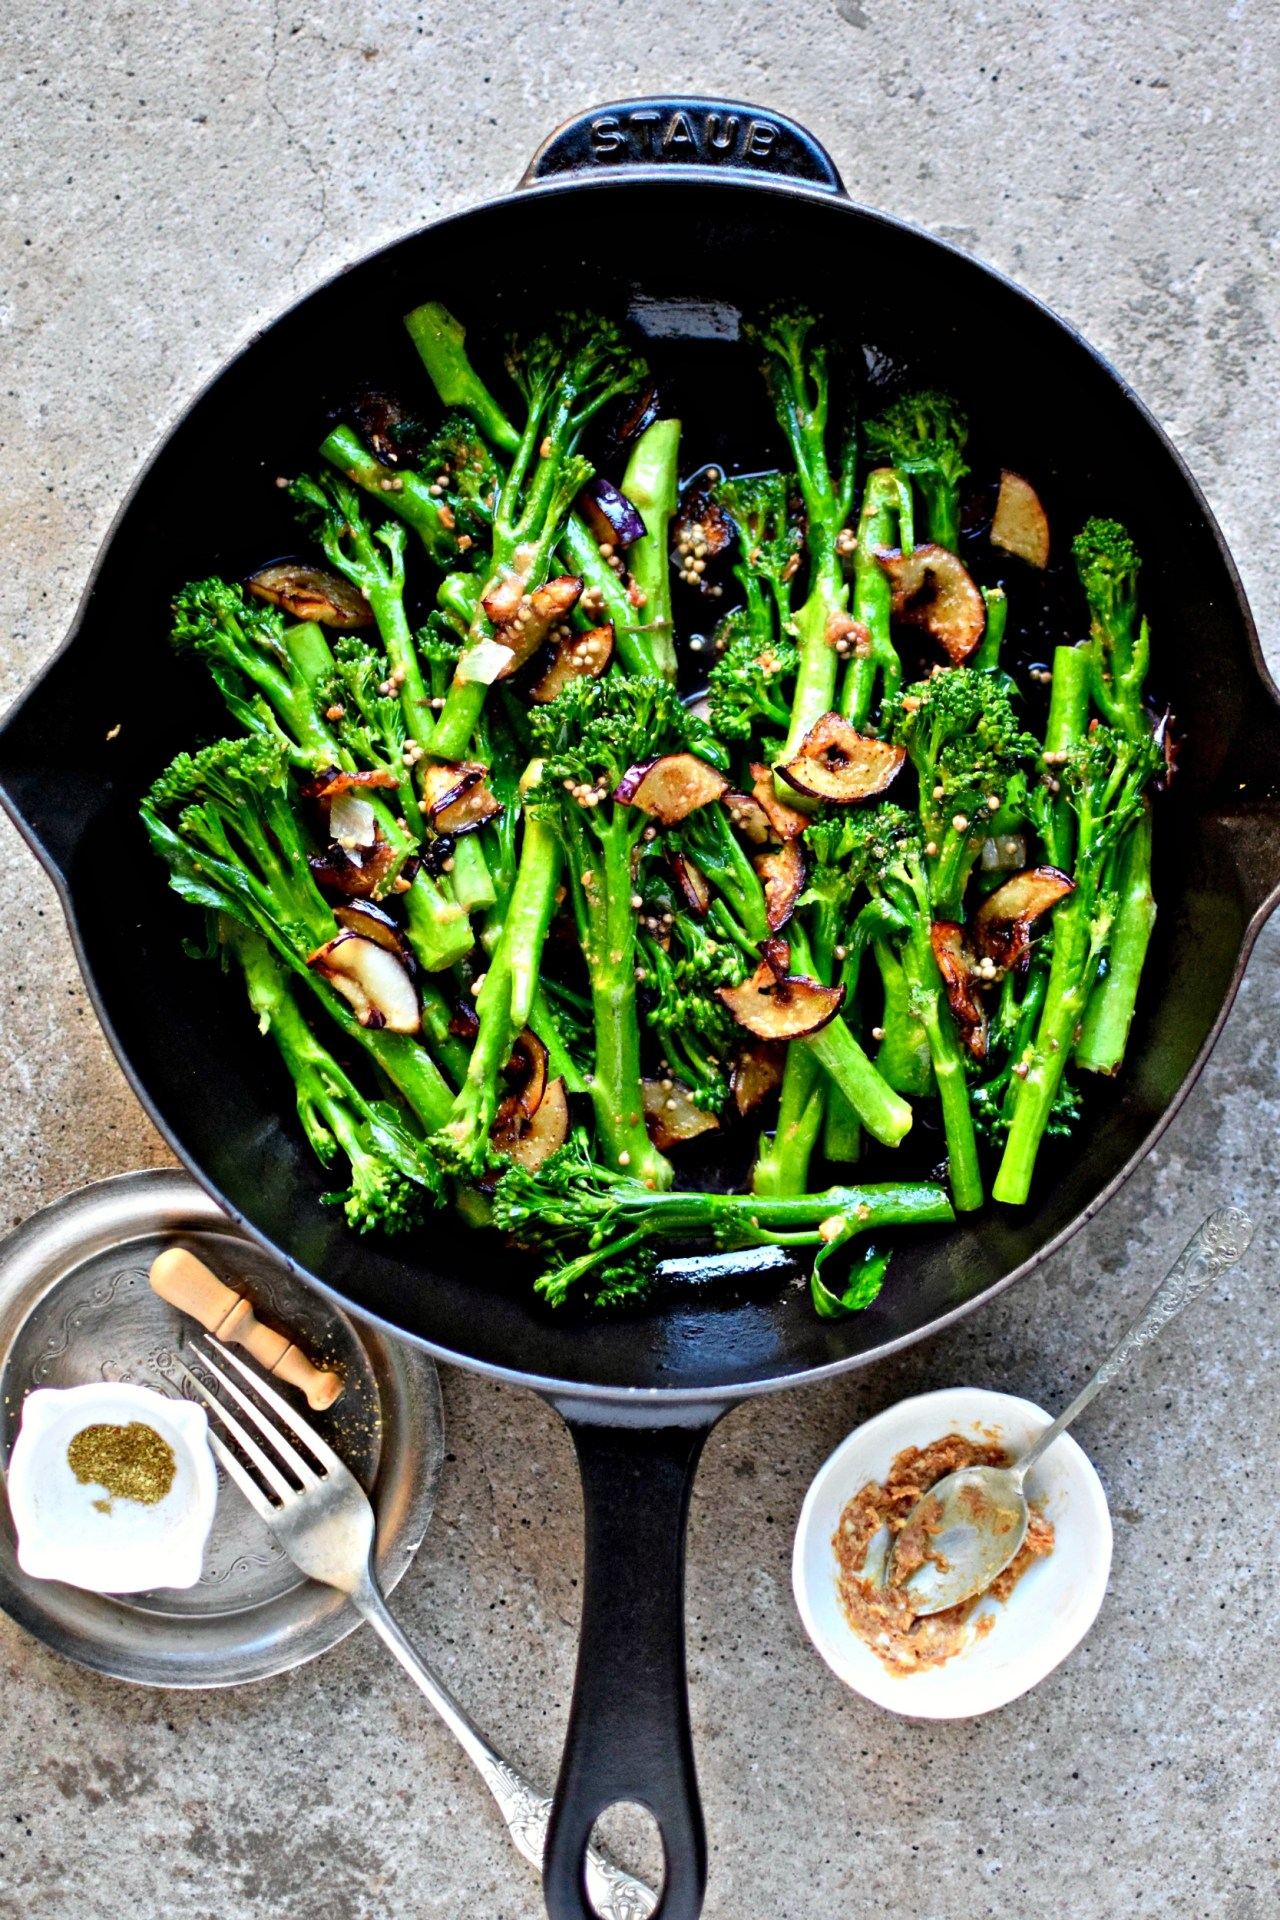 A simple but spectacular side dish featuring Tenderstem®, pan-fried eggplant and a Japanese spiced miso-butter. A quick and easy vegetable recipe to go with fish, tofu and any east Asian meal. kelliesfoodtoglow.com